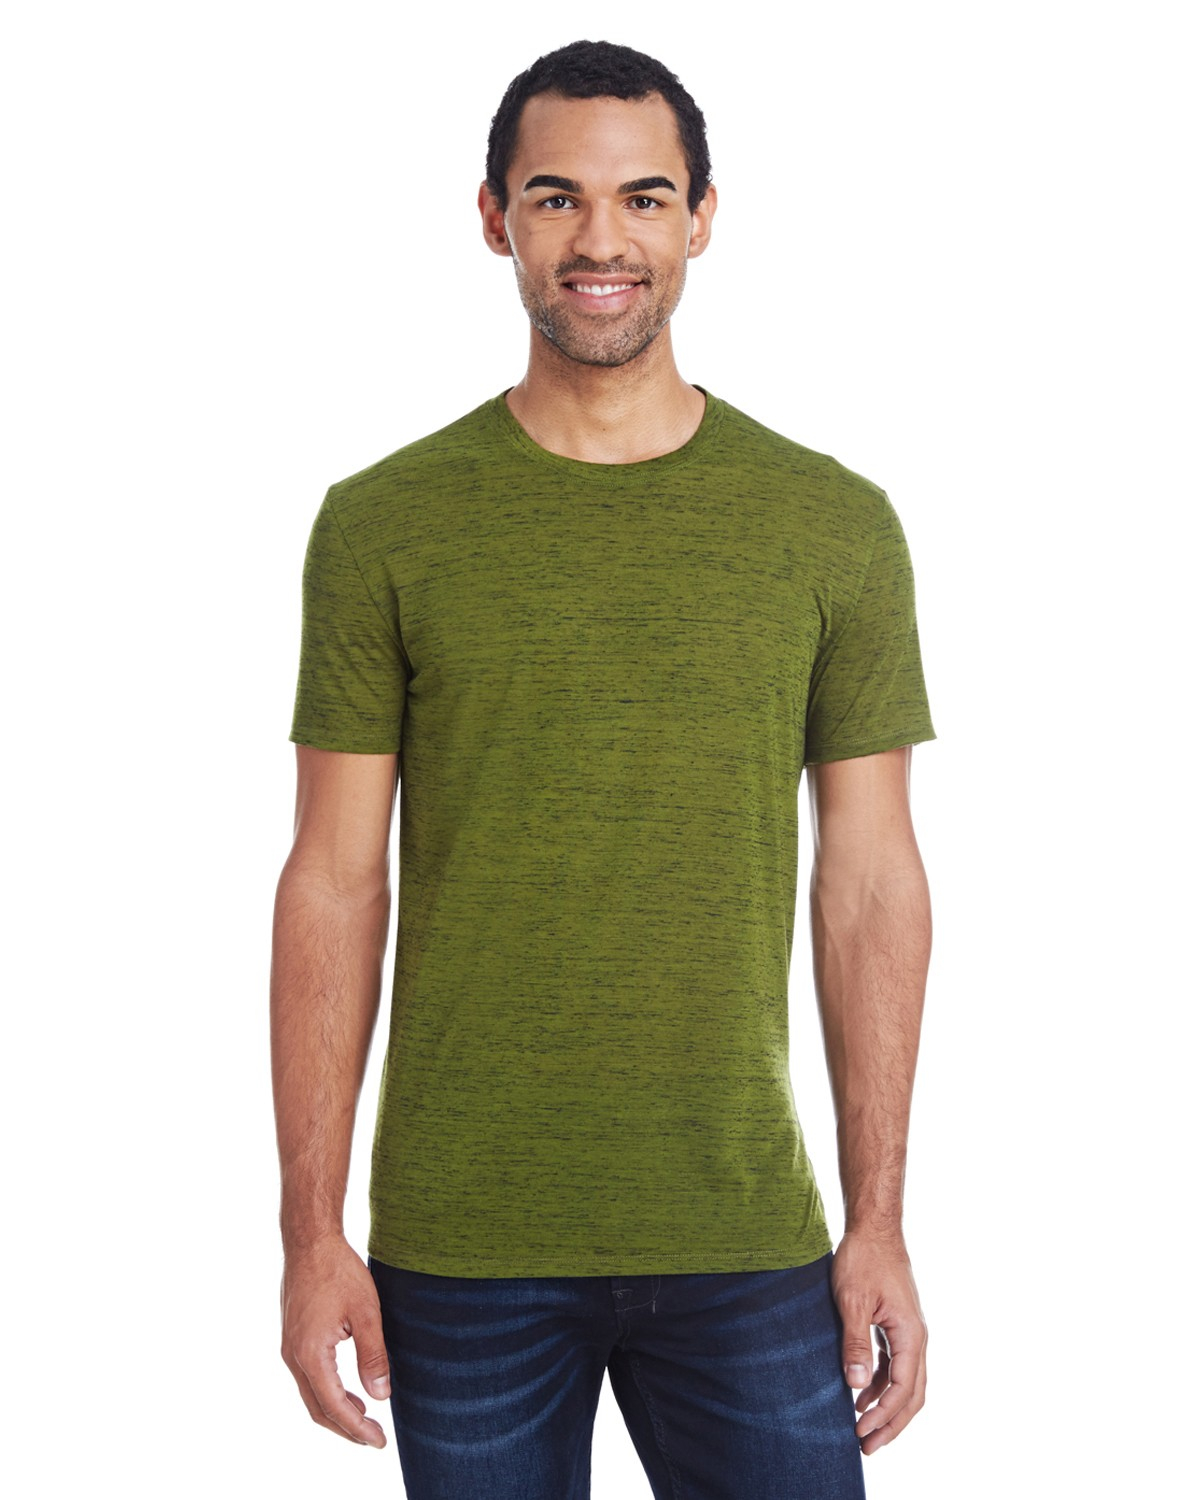 104A Threadfast Apparel OLIVE BLIZZARD